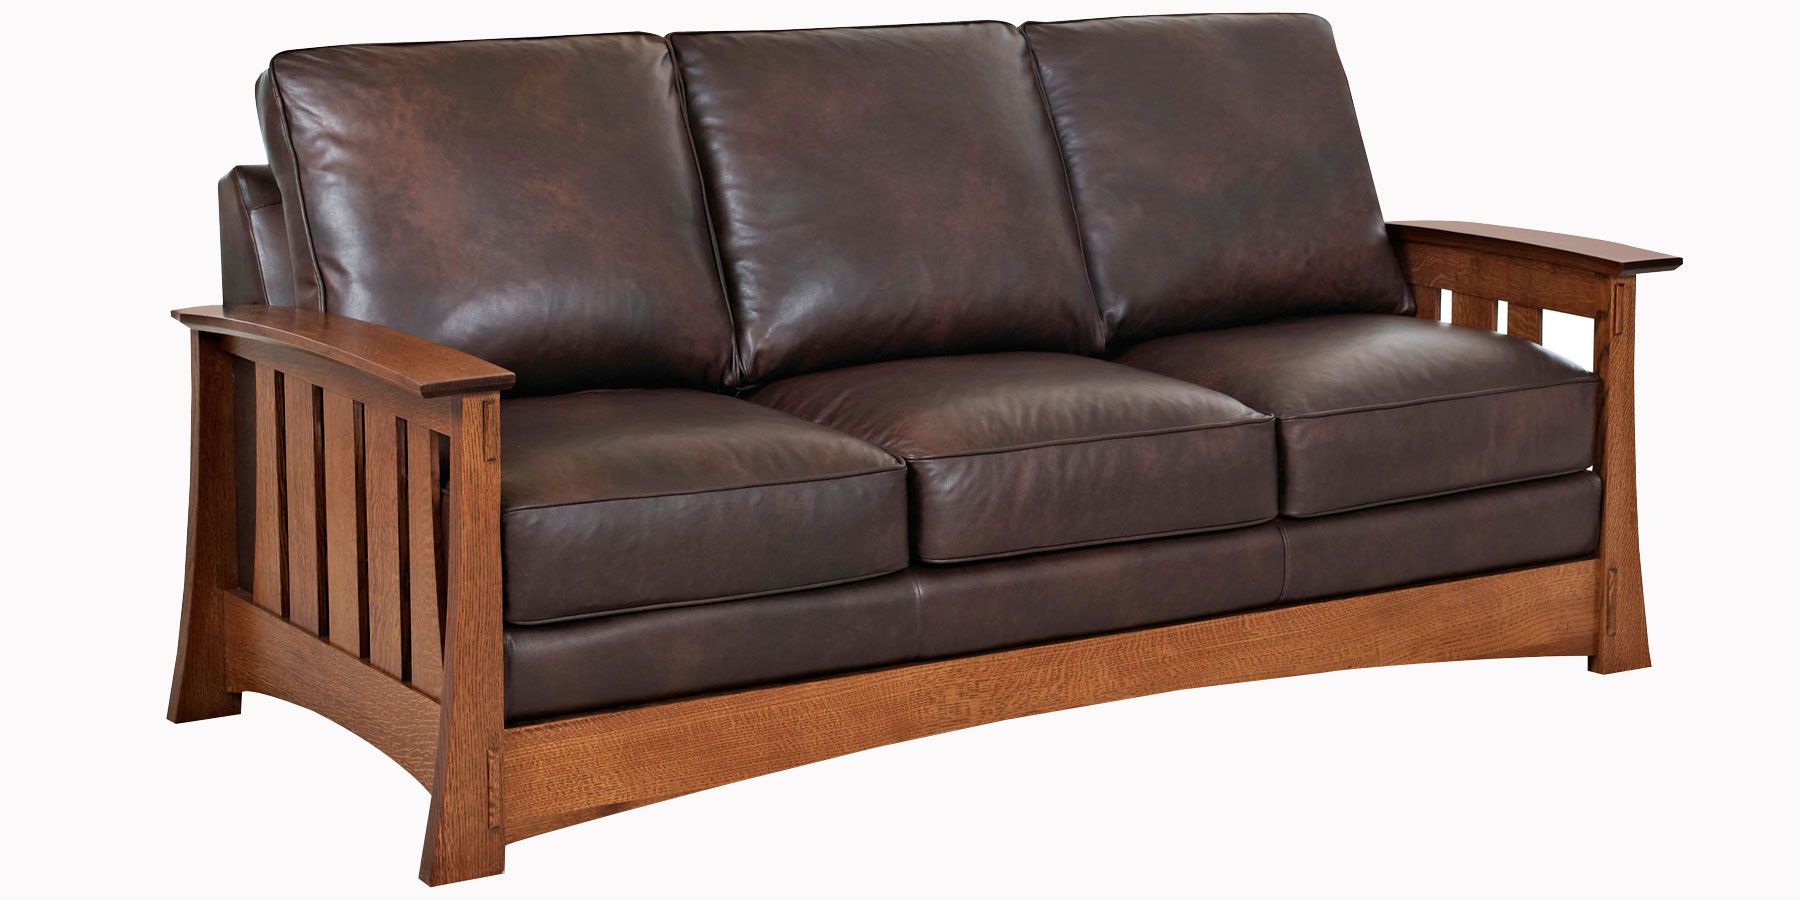 Stockton Mission Leather Collection Arm Chair Recliner